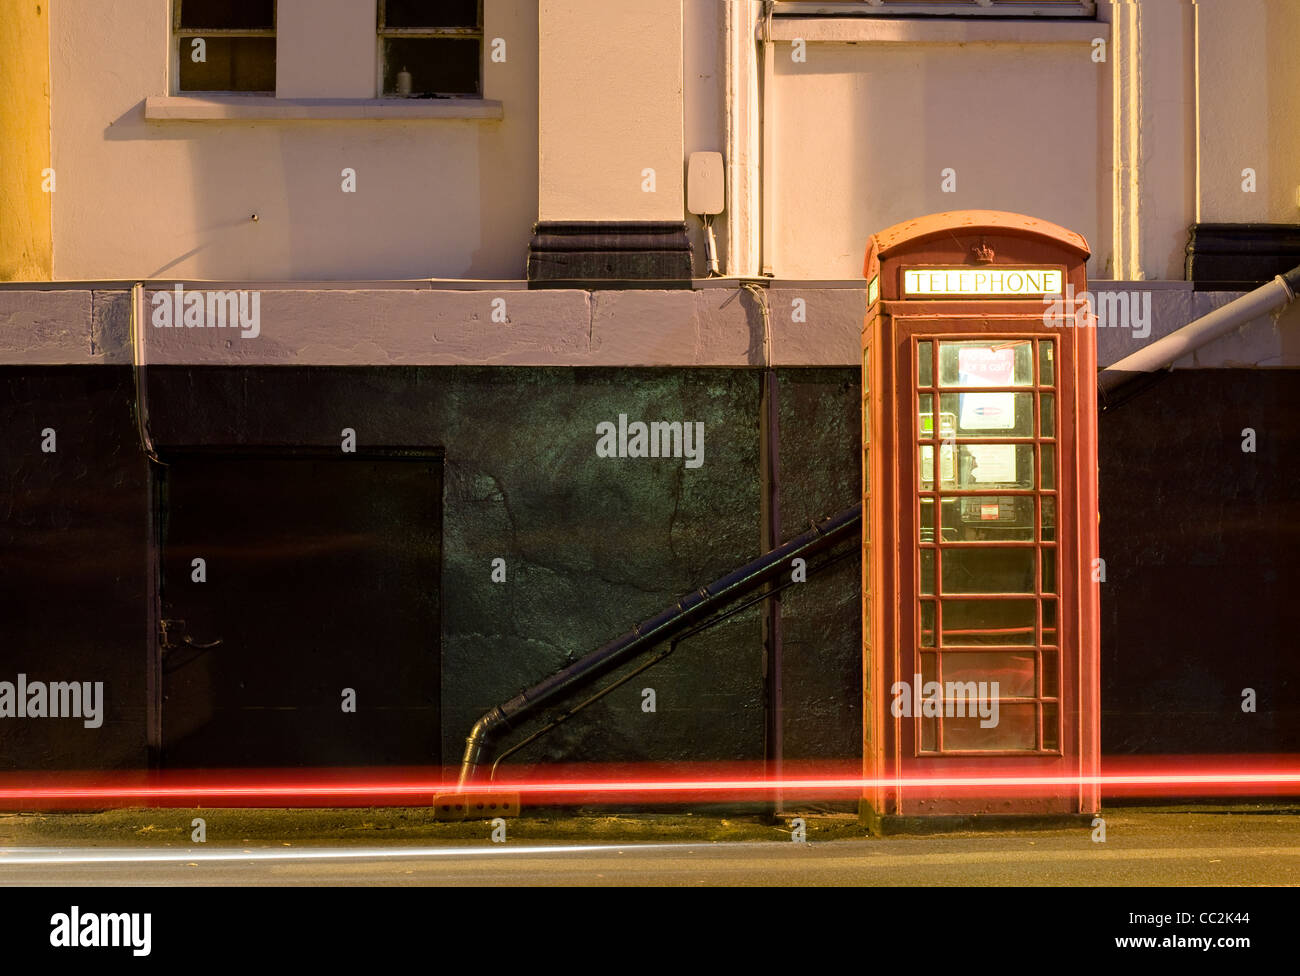 Night shot of UK phonebox with light trails from passing car. - Stock Image